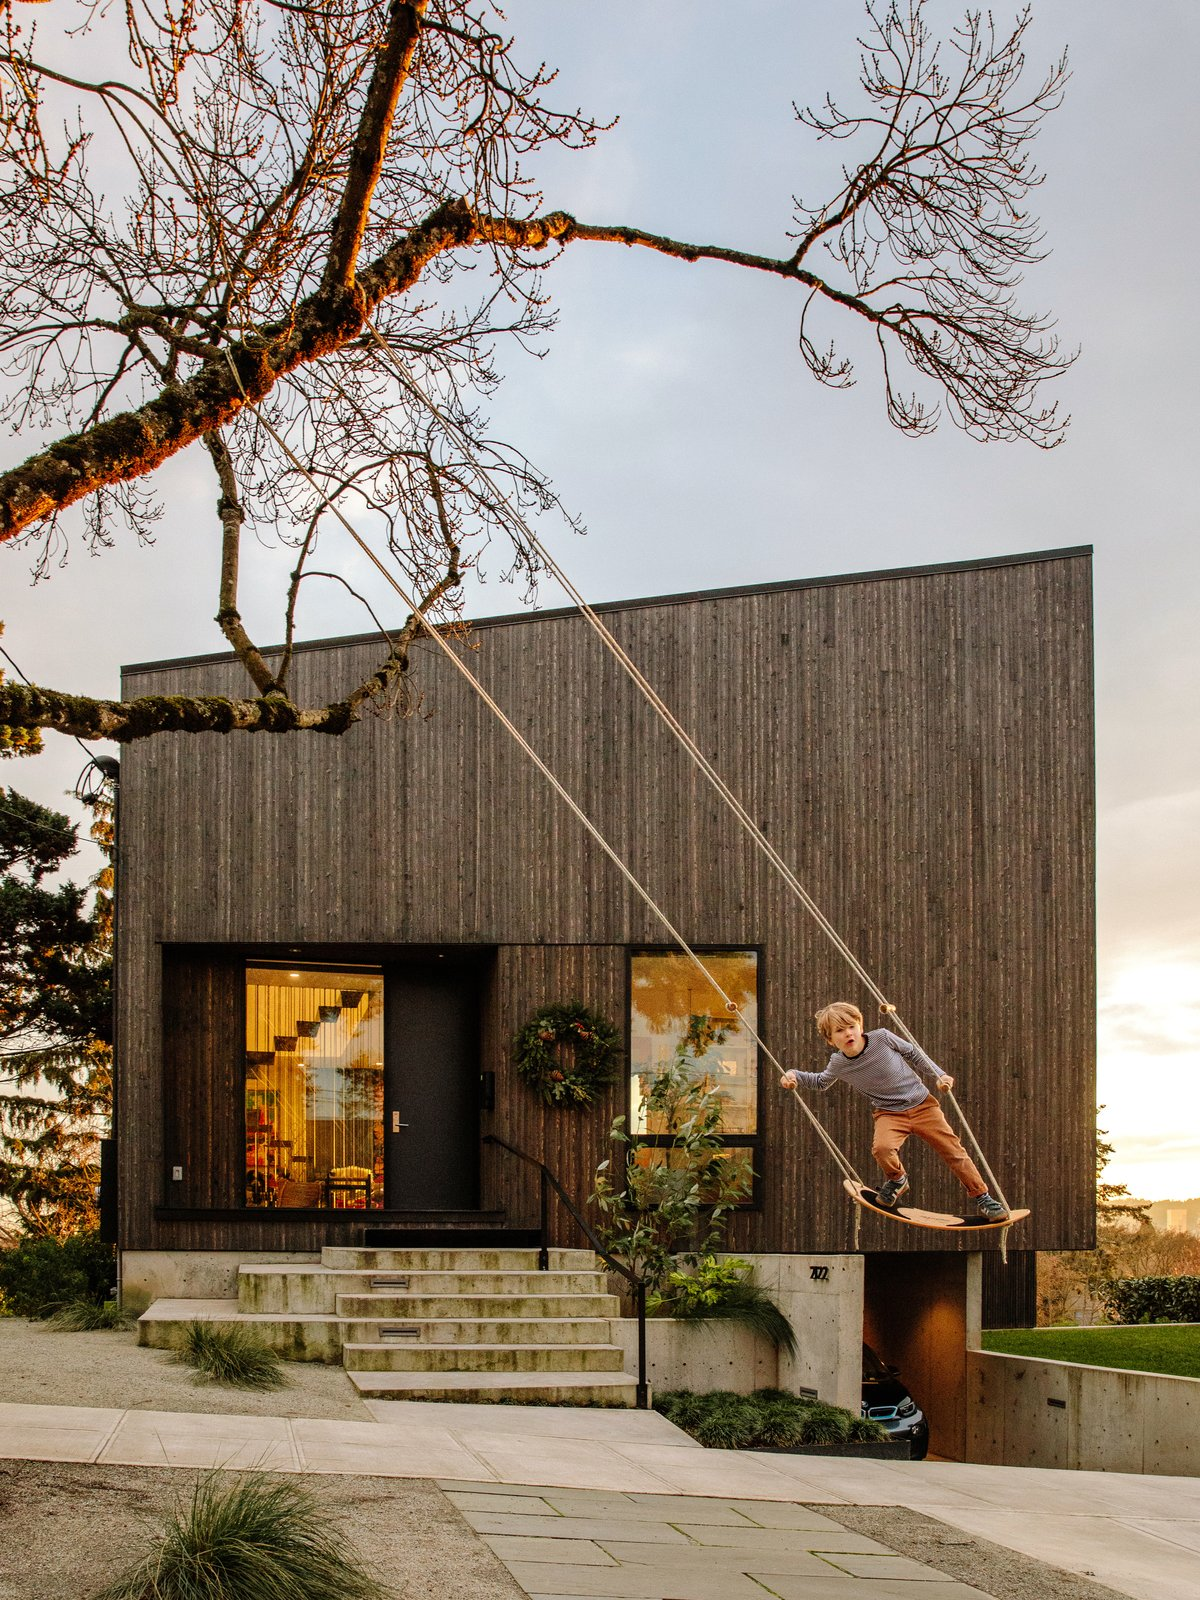 """Exterior, Shed RoofLine, House Building Type, and Wood Siding Material In 2013, Jennifer Warner and Cara Frey fell in love with a modest but charming 1920s house within walking distance of their bungalow. The dwelling was dramatically sited, with great views of Portland's southwest hills and downtown. But according to Michael Leckie, the Vancouver–based architect they eventually hired, """"It was the dumpiest house on the block."""" Leckie replaced the house with a simple, modern design, using a basic square wood box that skews into a rhombus form, which he topped with a sloping roof. Their son, William, 6, swings in front of the cedar-clad house.  Best Photos from A Darkened Cedar Dwelling in Portland Embodies """"Less But Better"""" Design"""